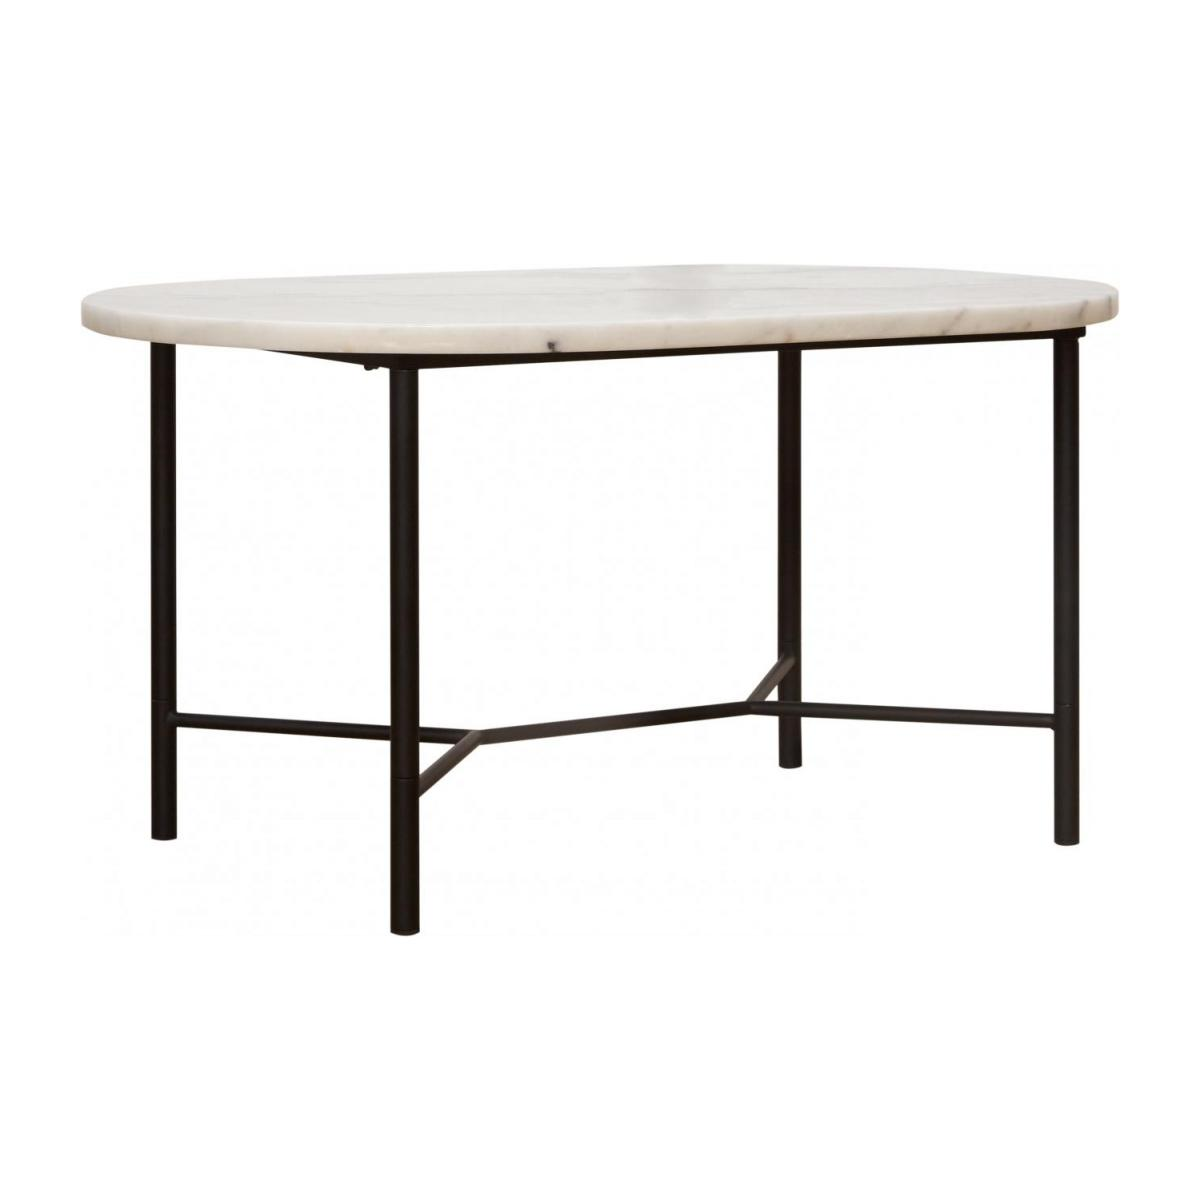 Table Salon Marbre Goldie Table Basse Ovale Marbre Blanc